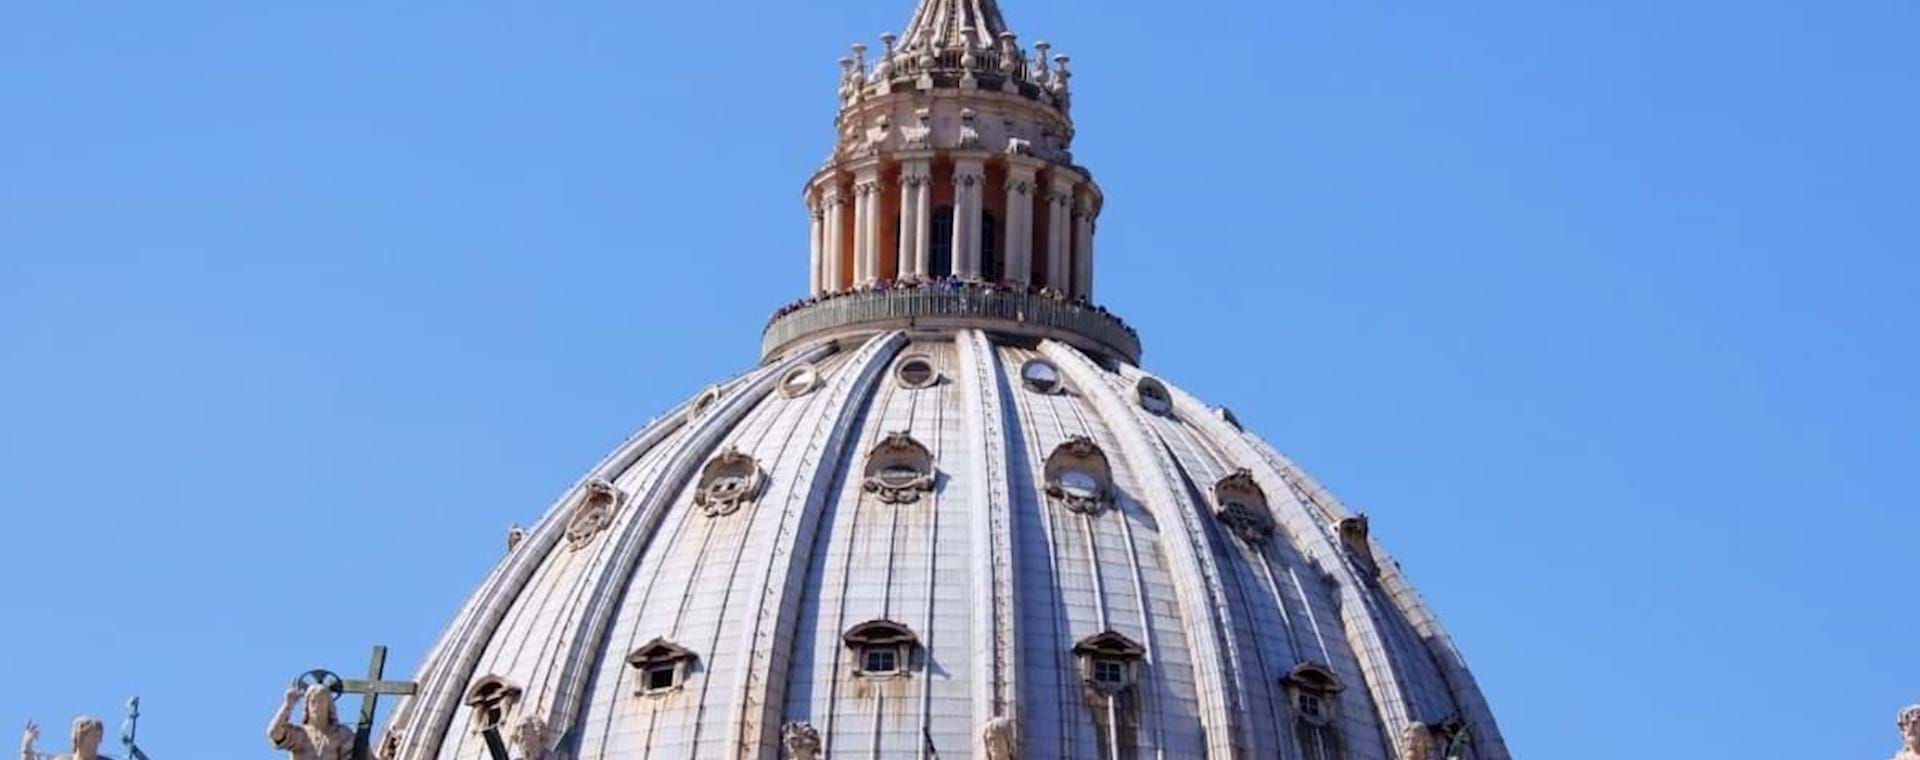 St Peter's Basilica Dome and Apostles statues on a sunny day